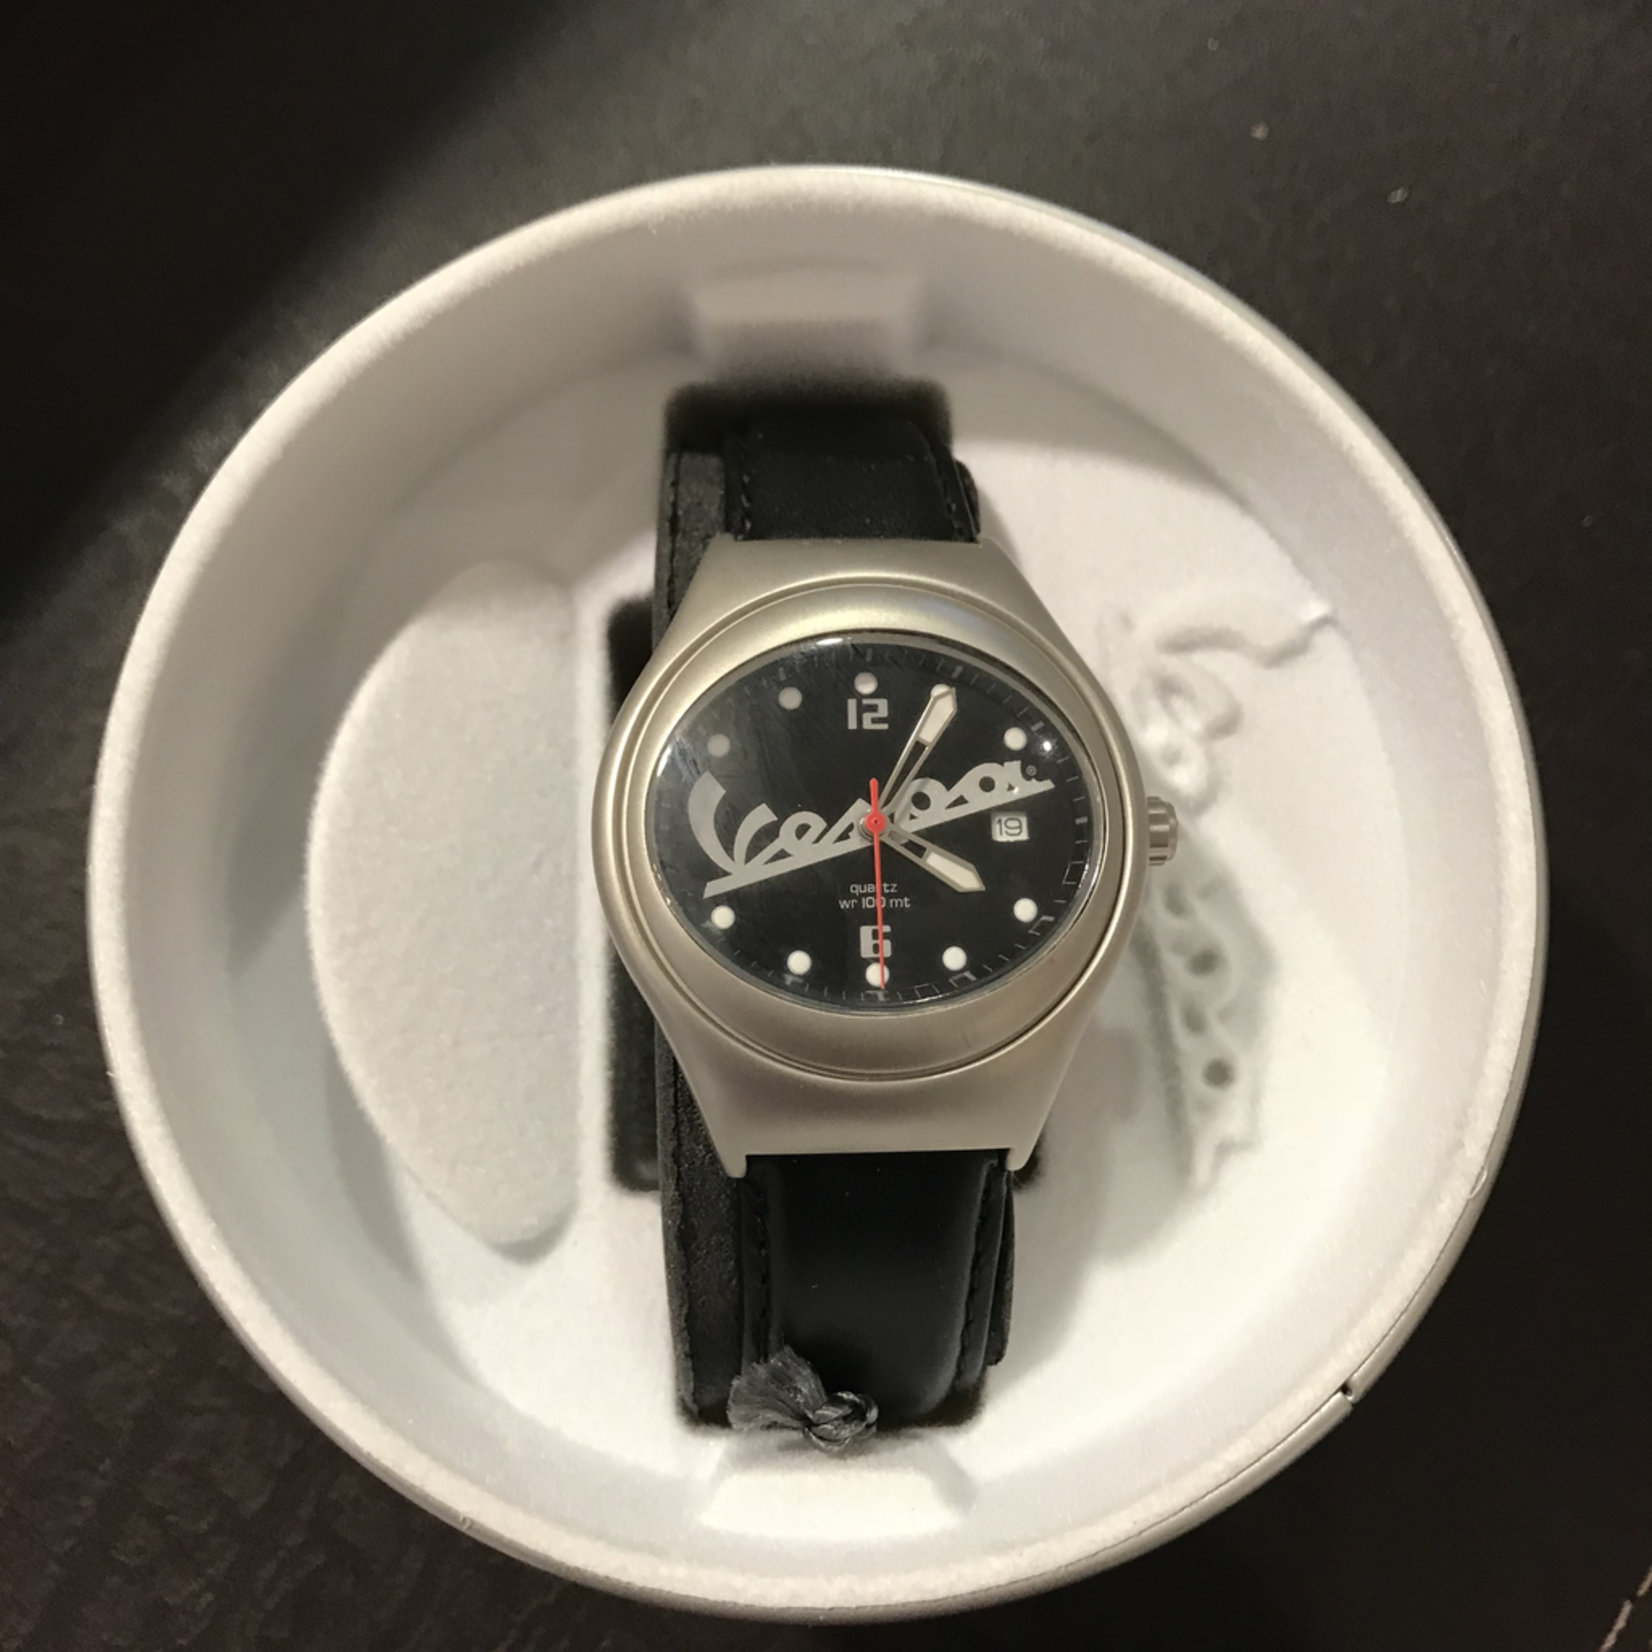 Lifestyle Watch, Vespa Black Water Resistant to 100m